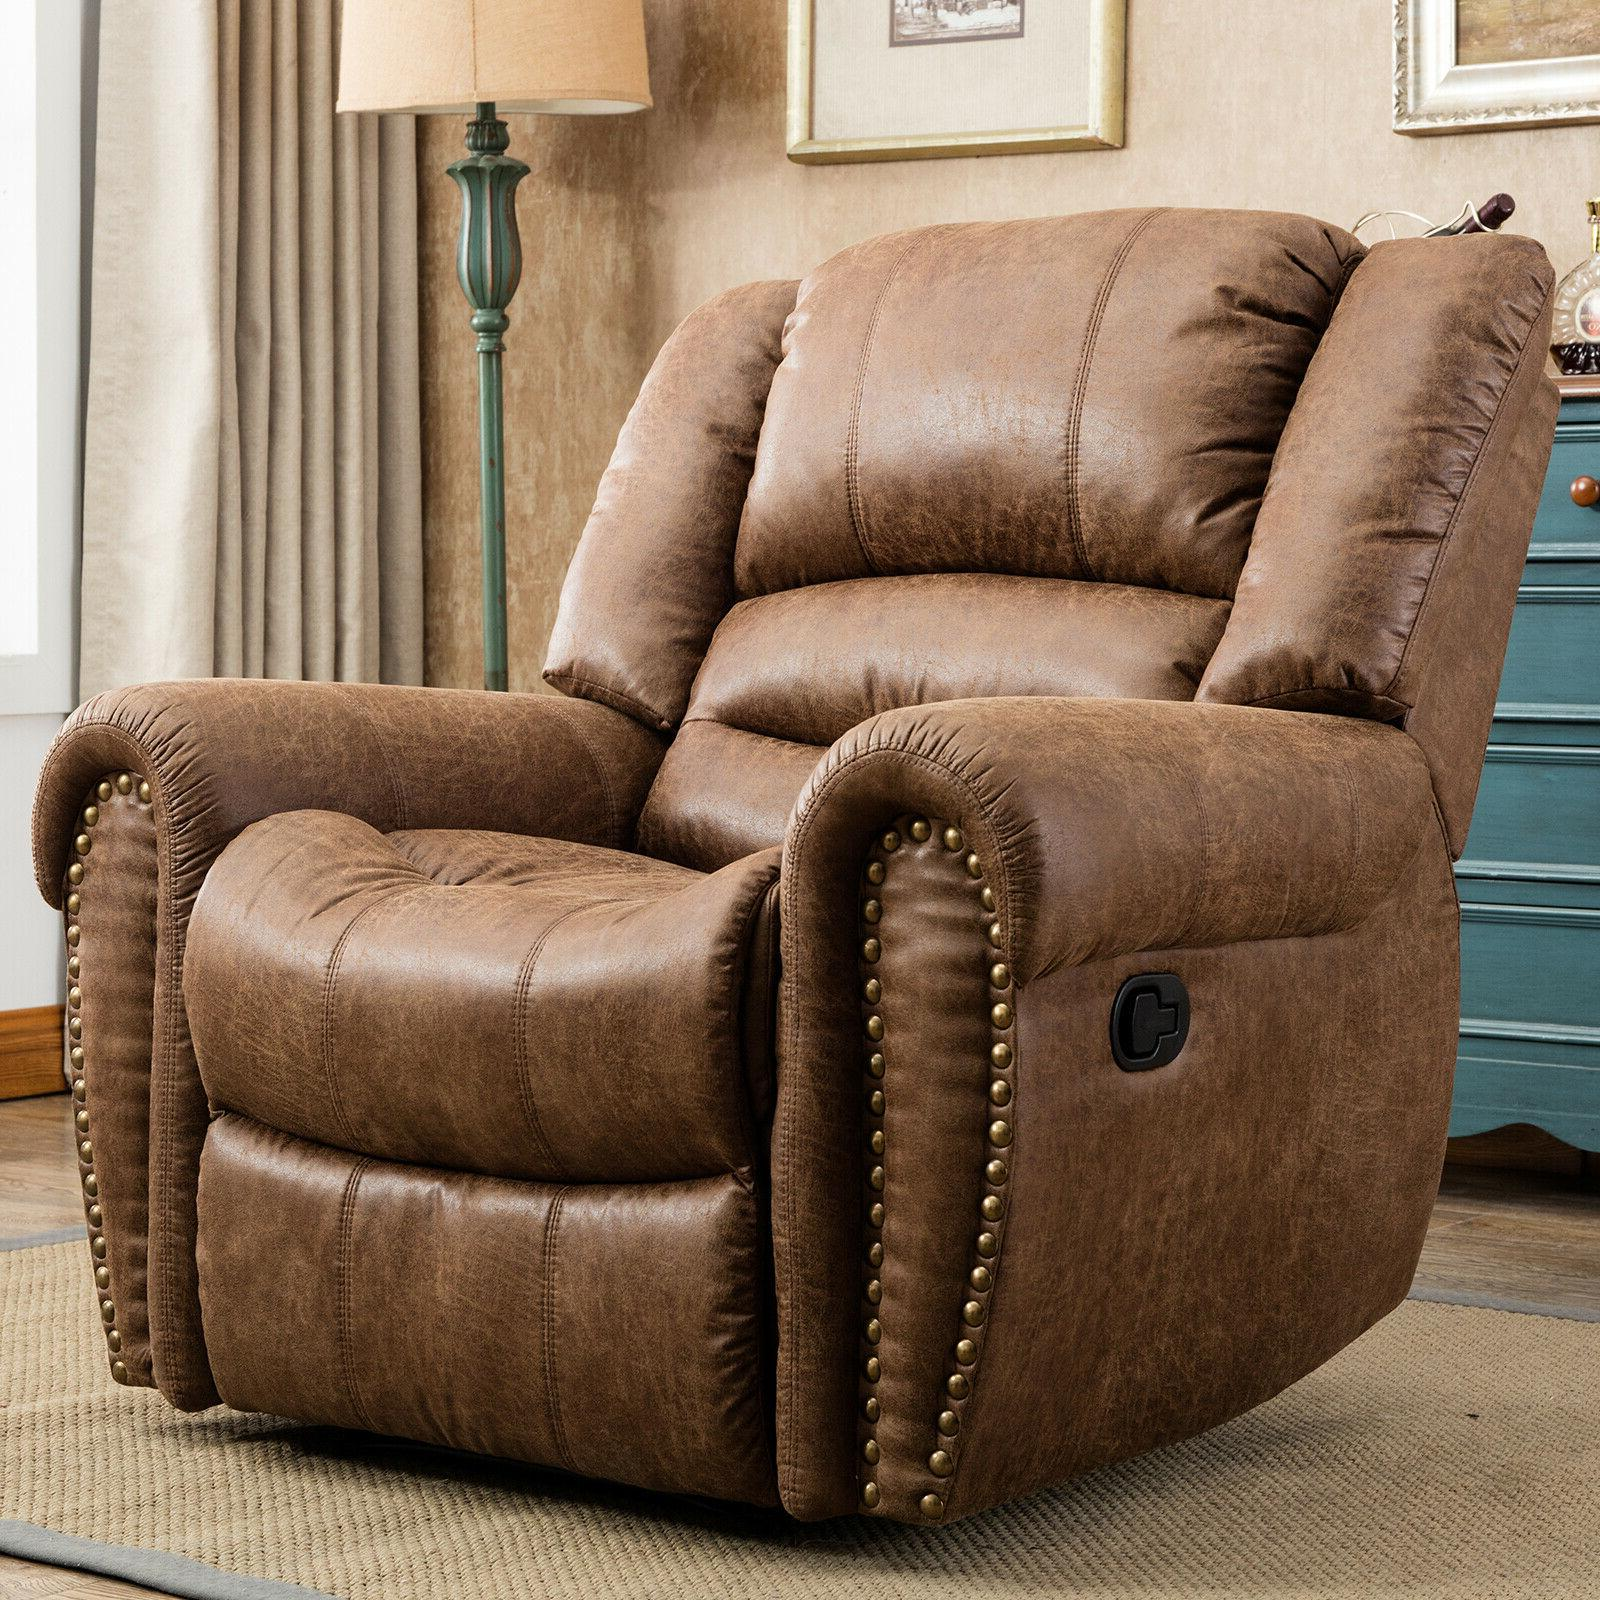 leather manual recliner chair overstuffed arms